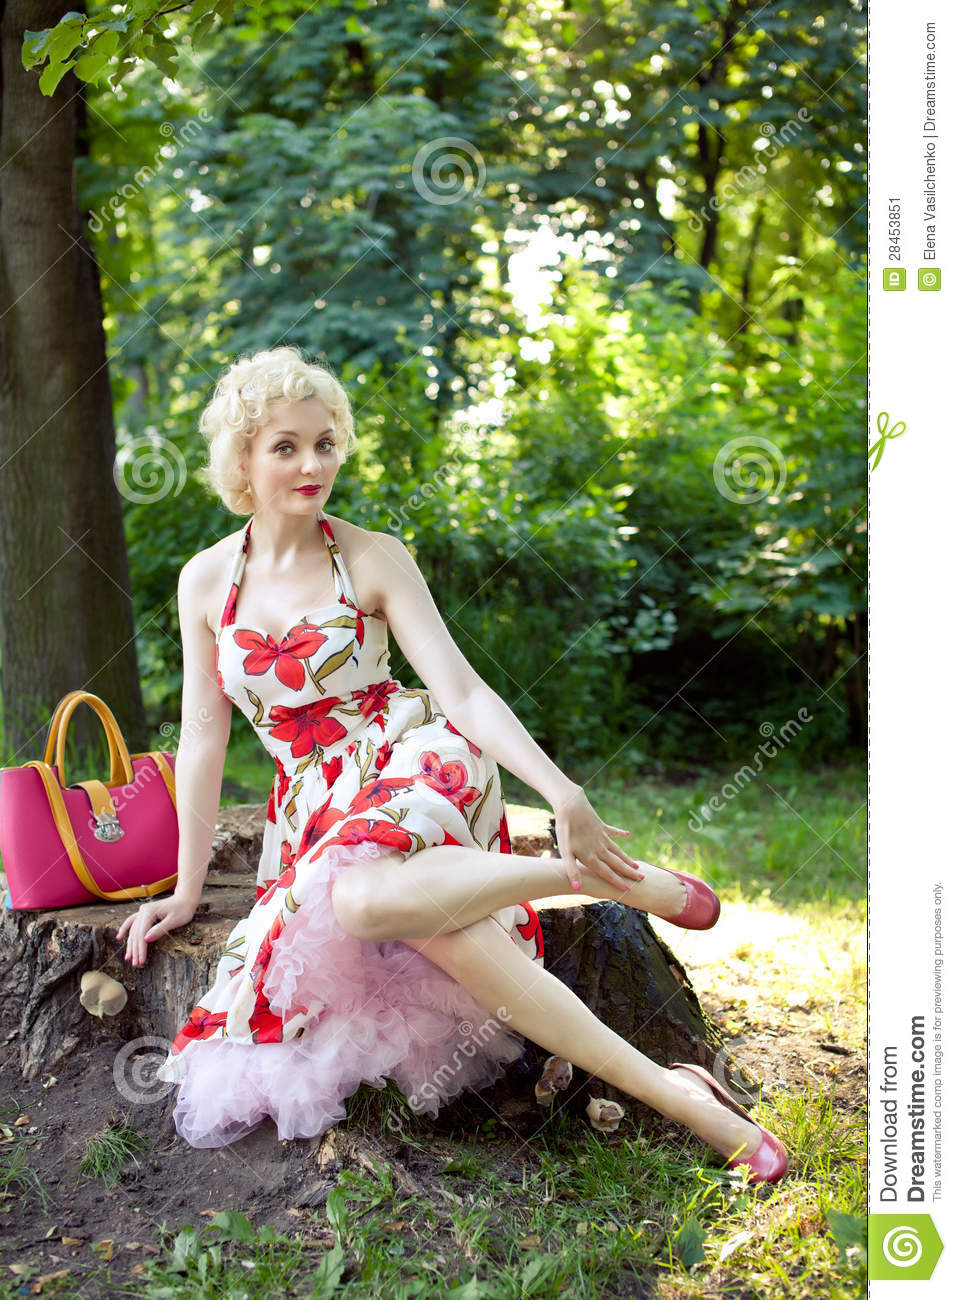 Pin up girl posing in park stock image Image of pinup